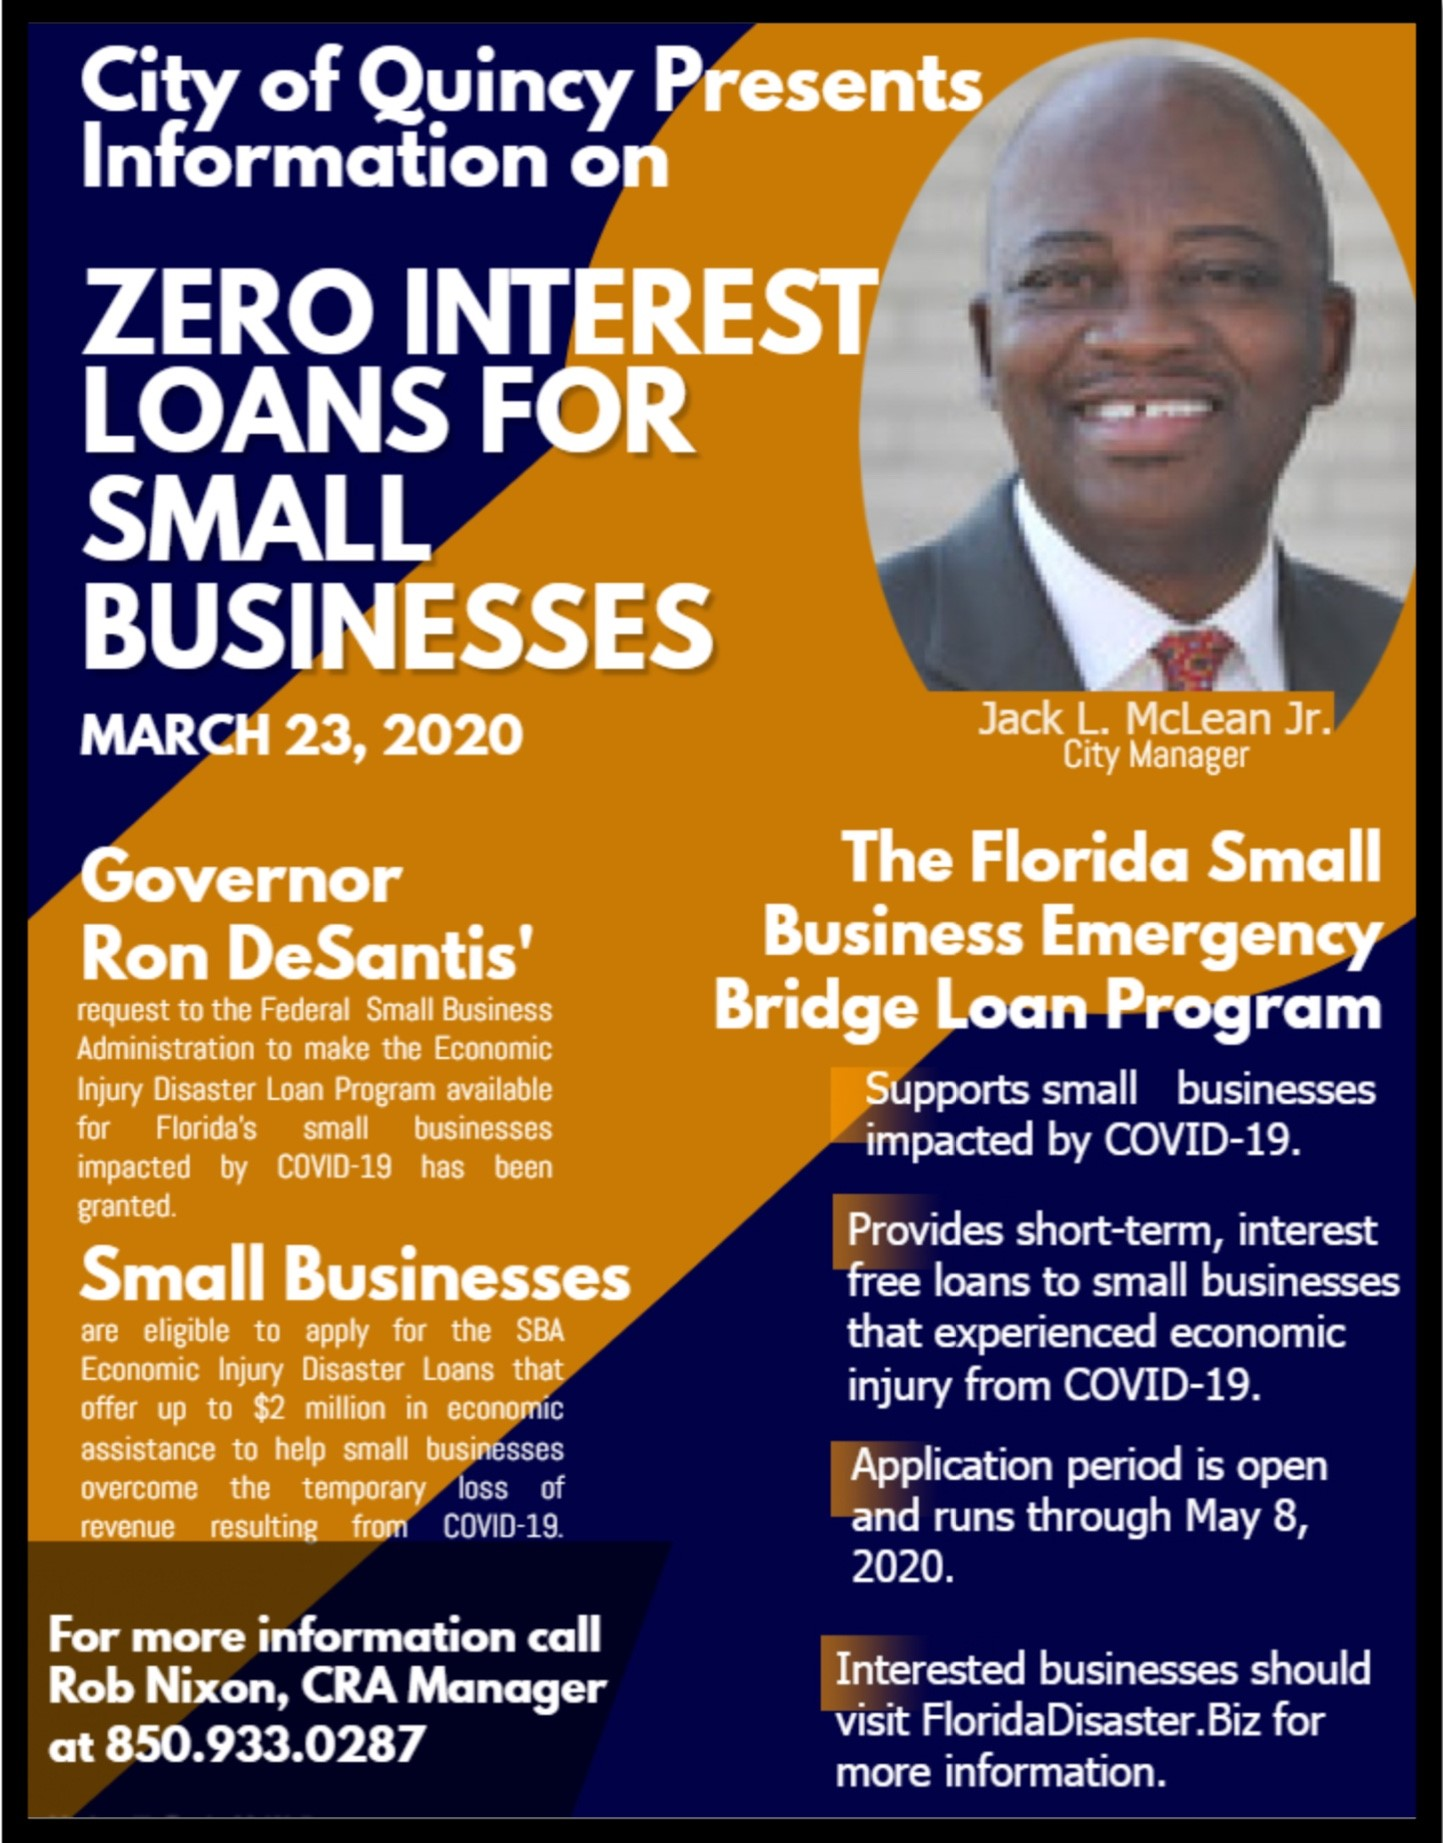 Zero Interest Loans for Small Businesses